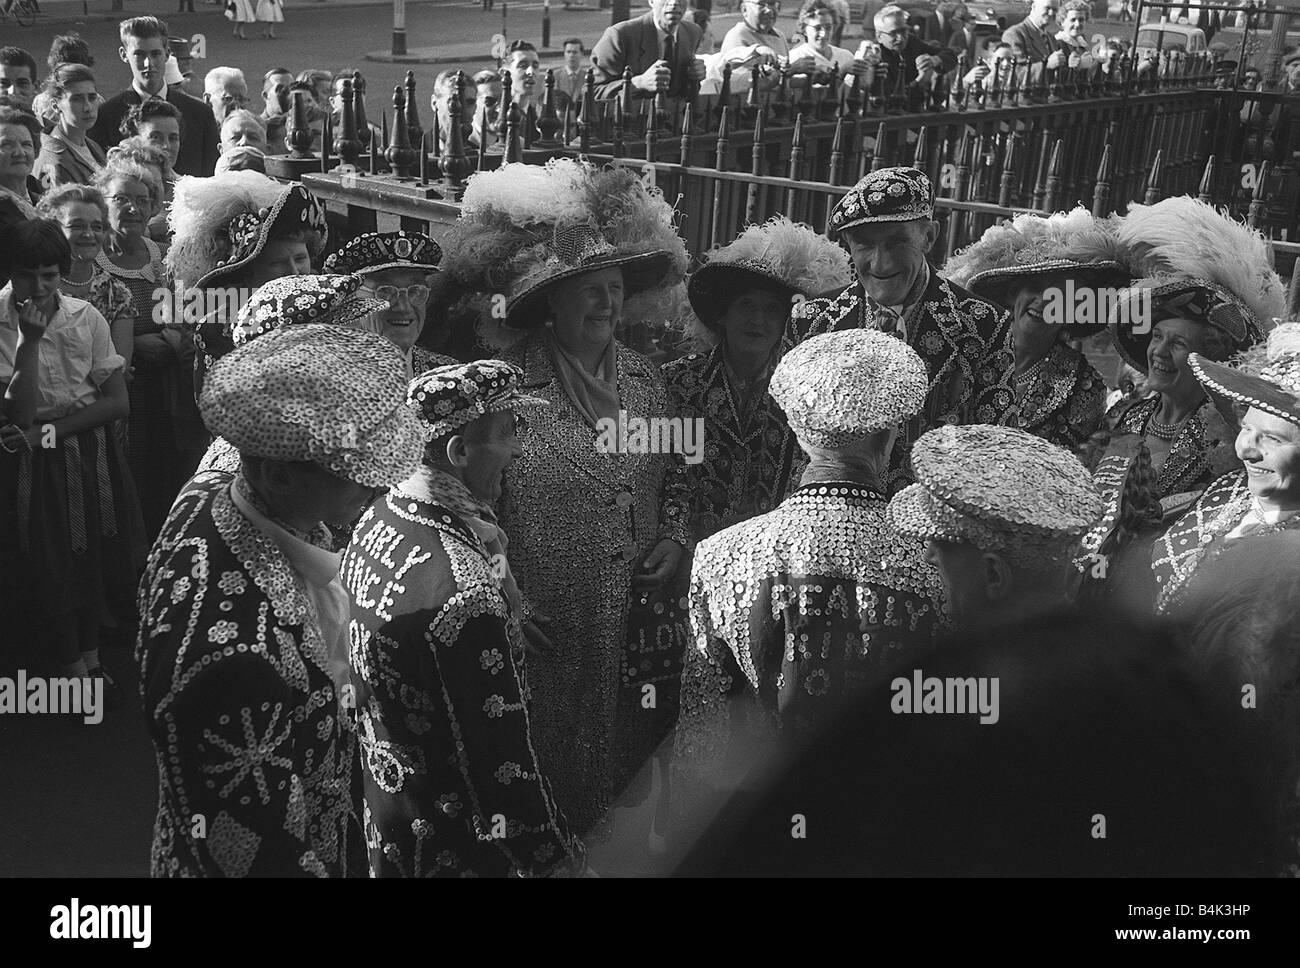 Pearly Kings and Queens Trafalgar Square London October 1958 Pearly King and Queen A collection of Pearly Kings - Stock Image